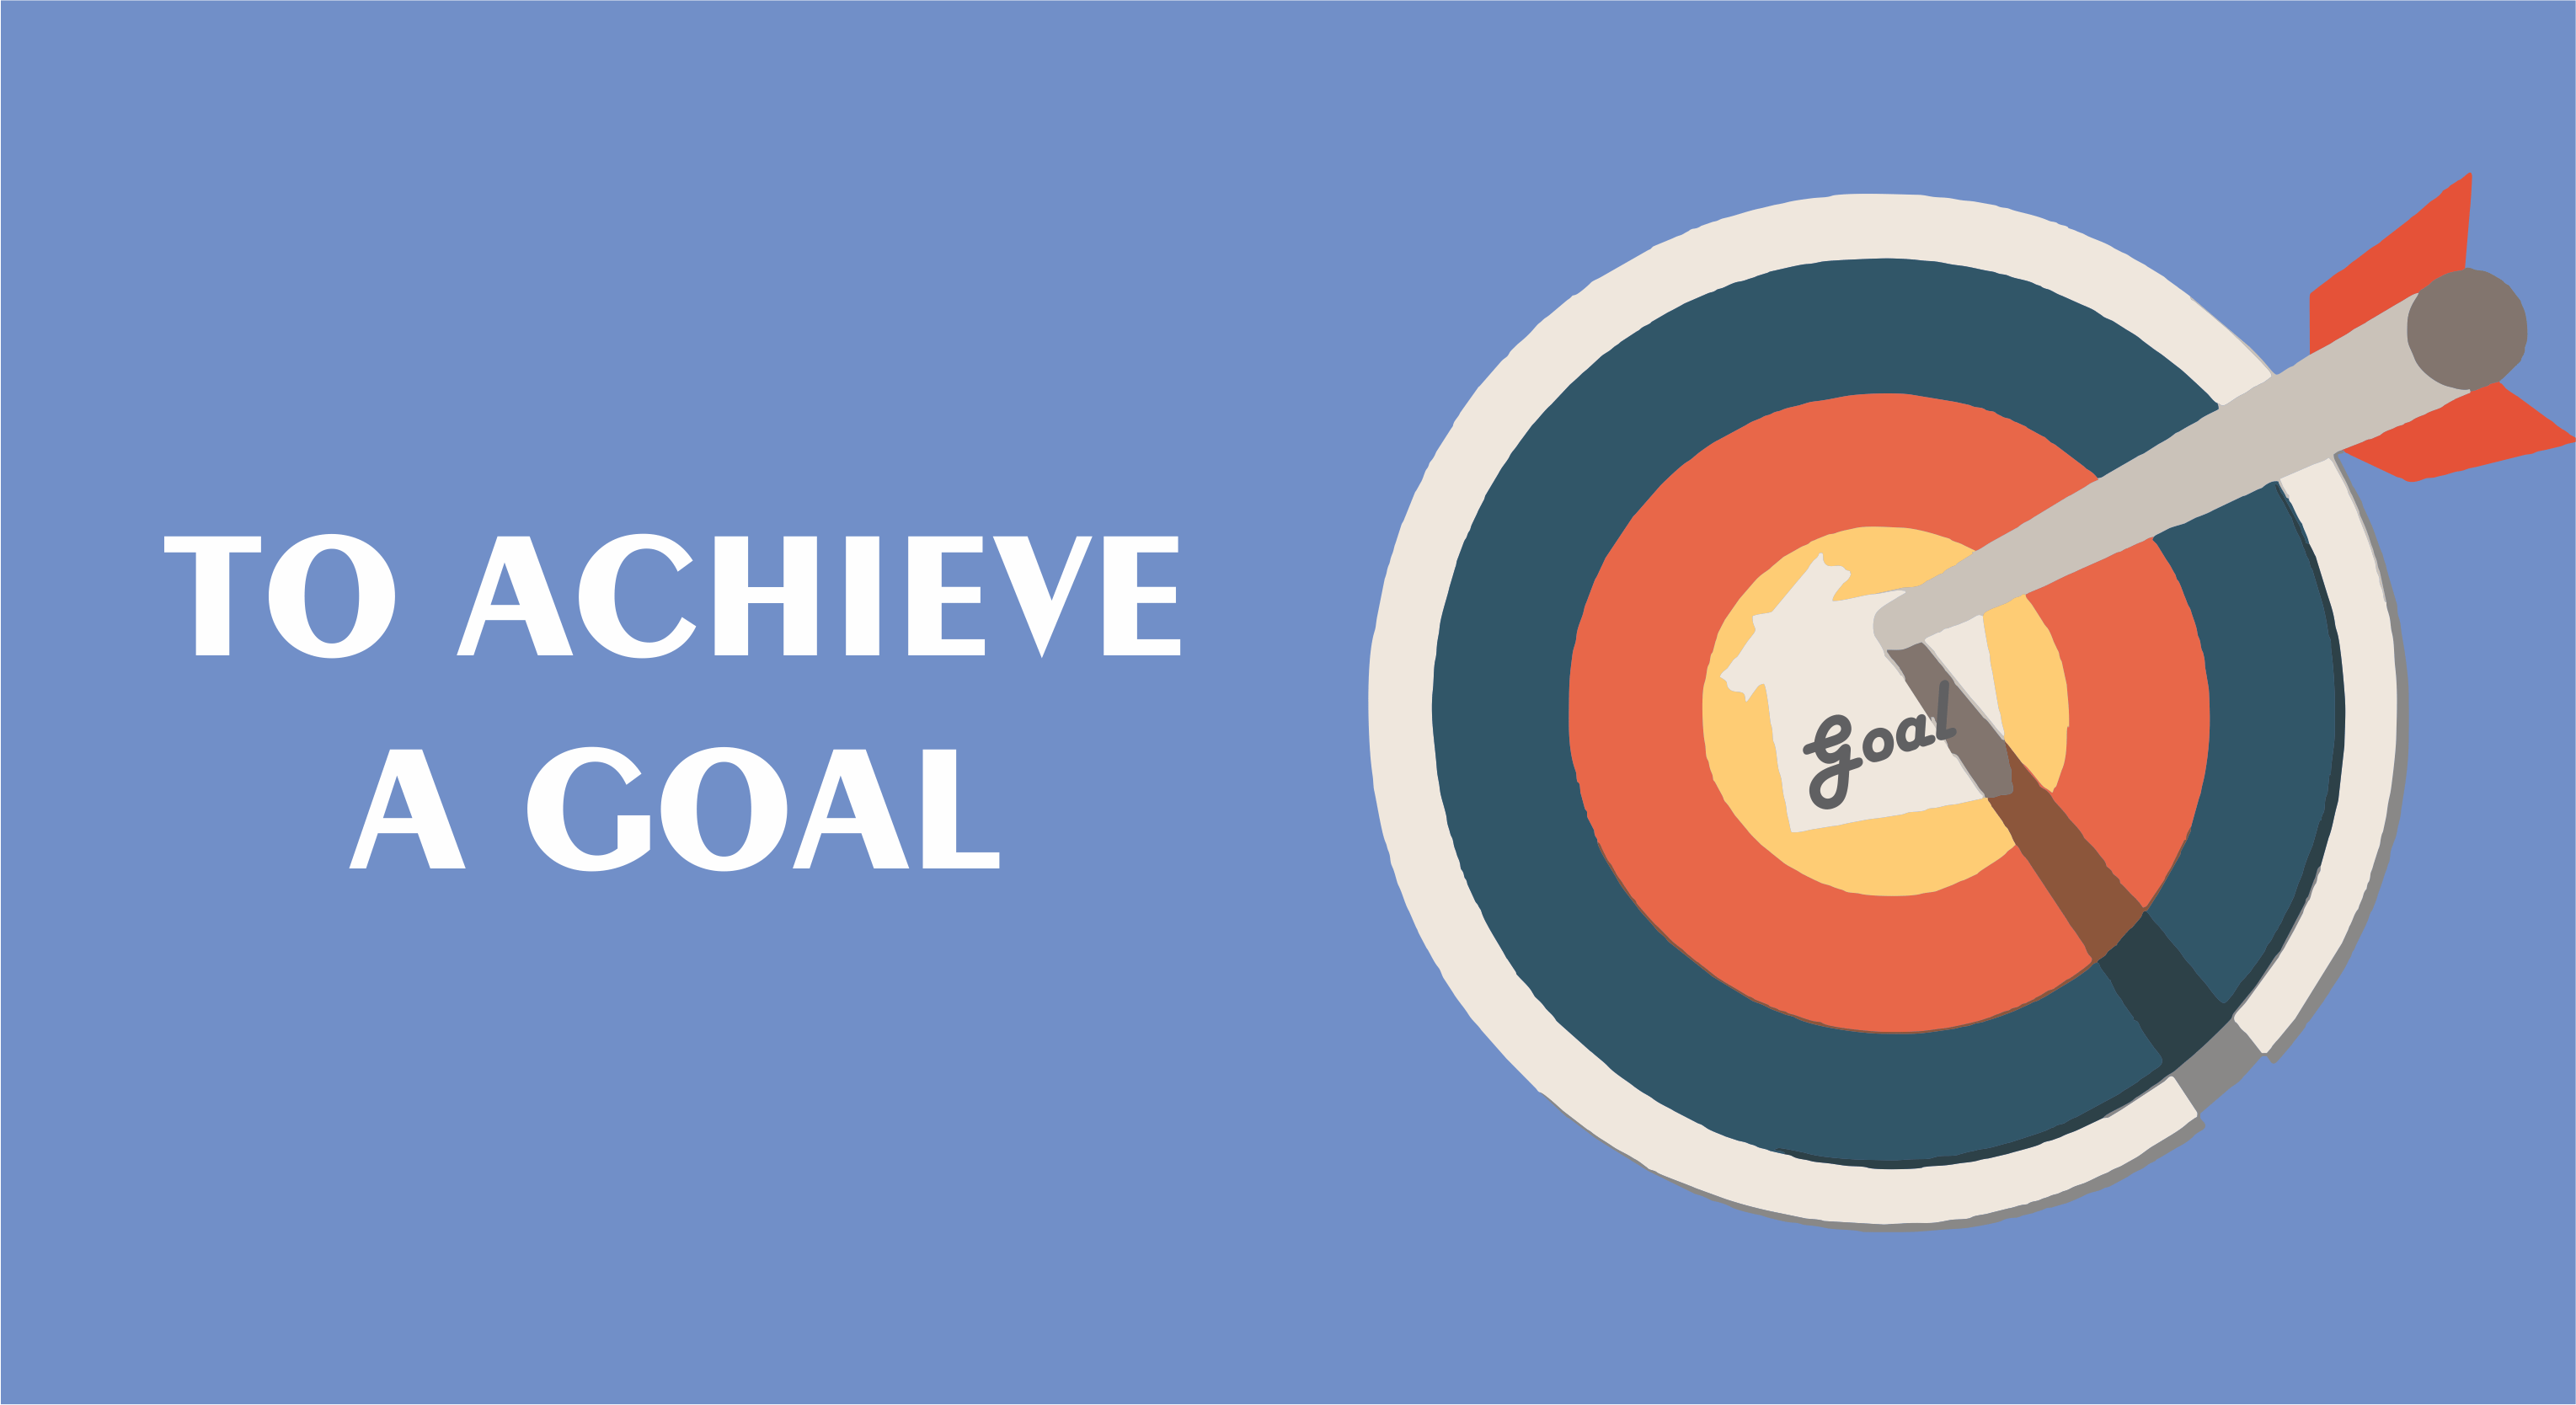 To Achieve a Goal